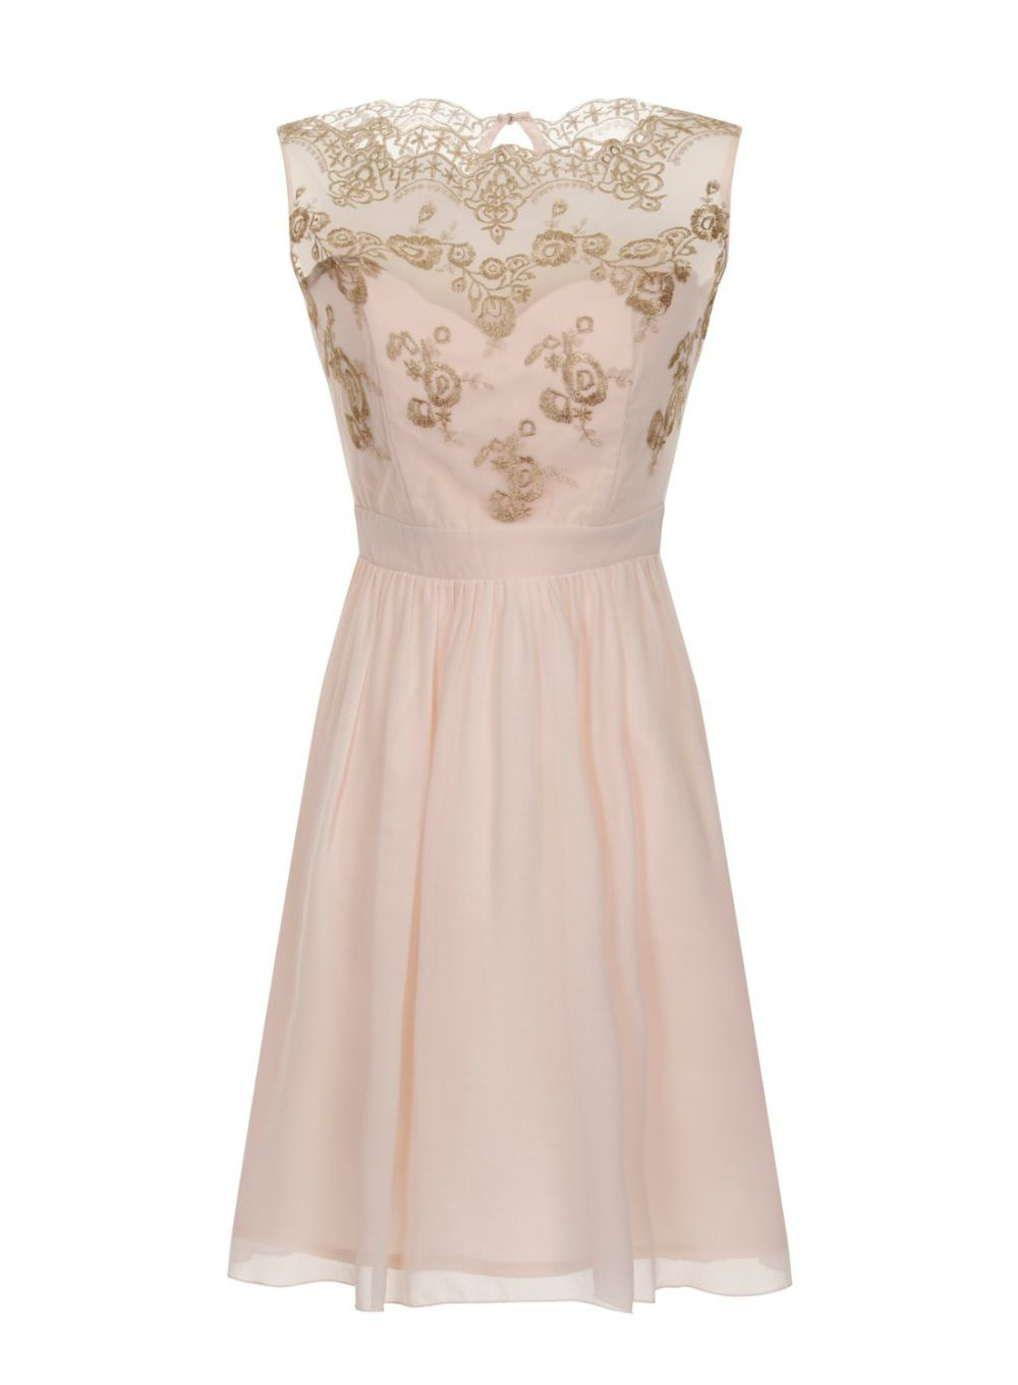 Laced in love nude mesh overlay prom dress fashion wishlist